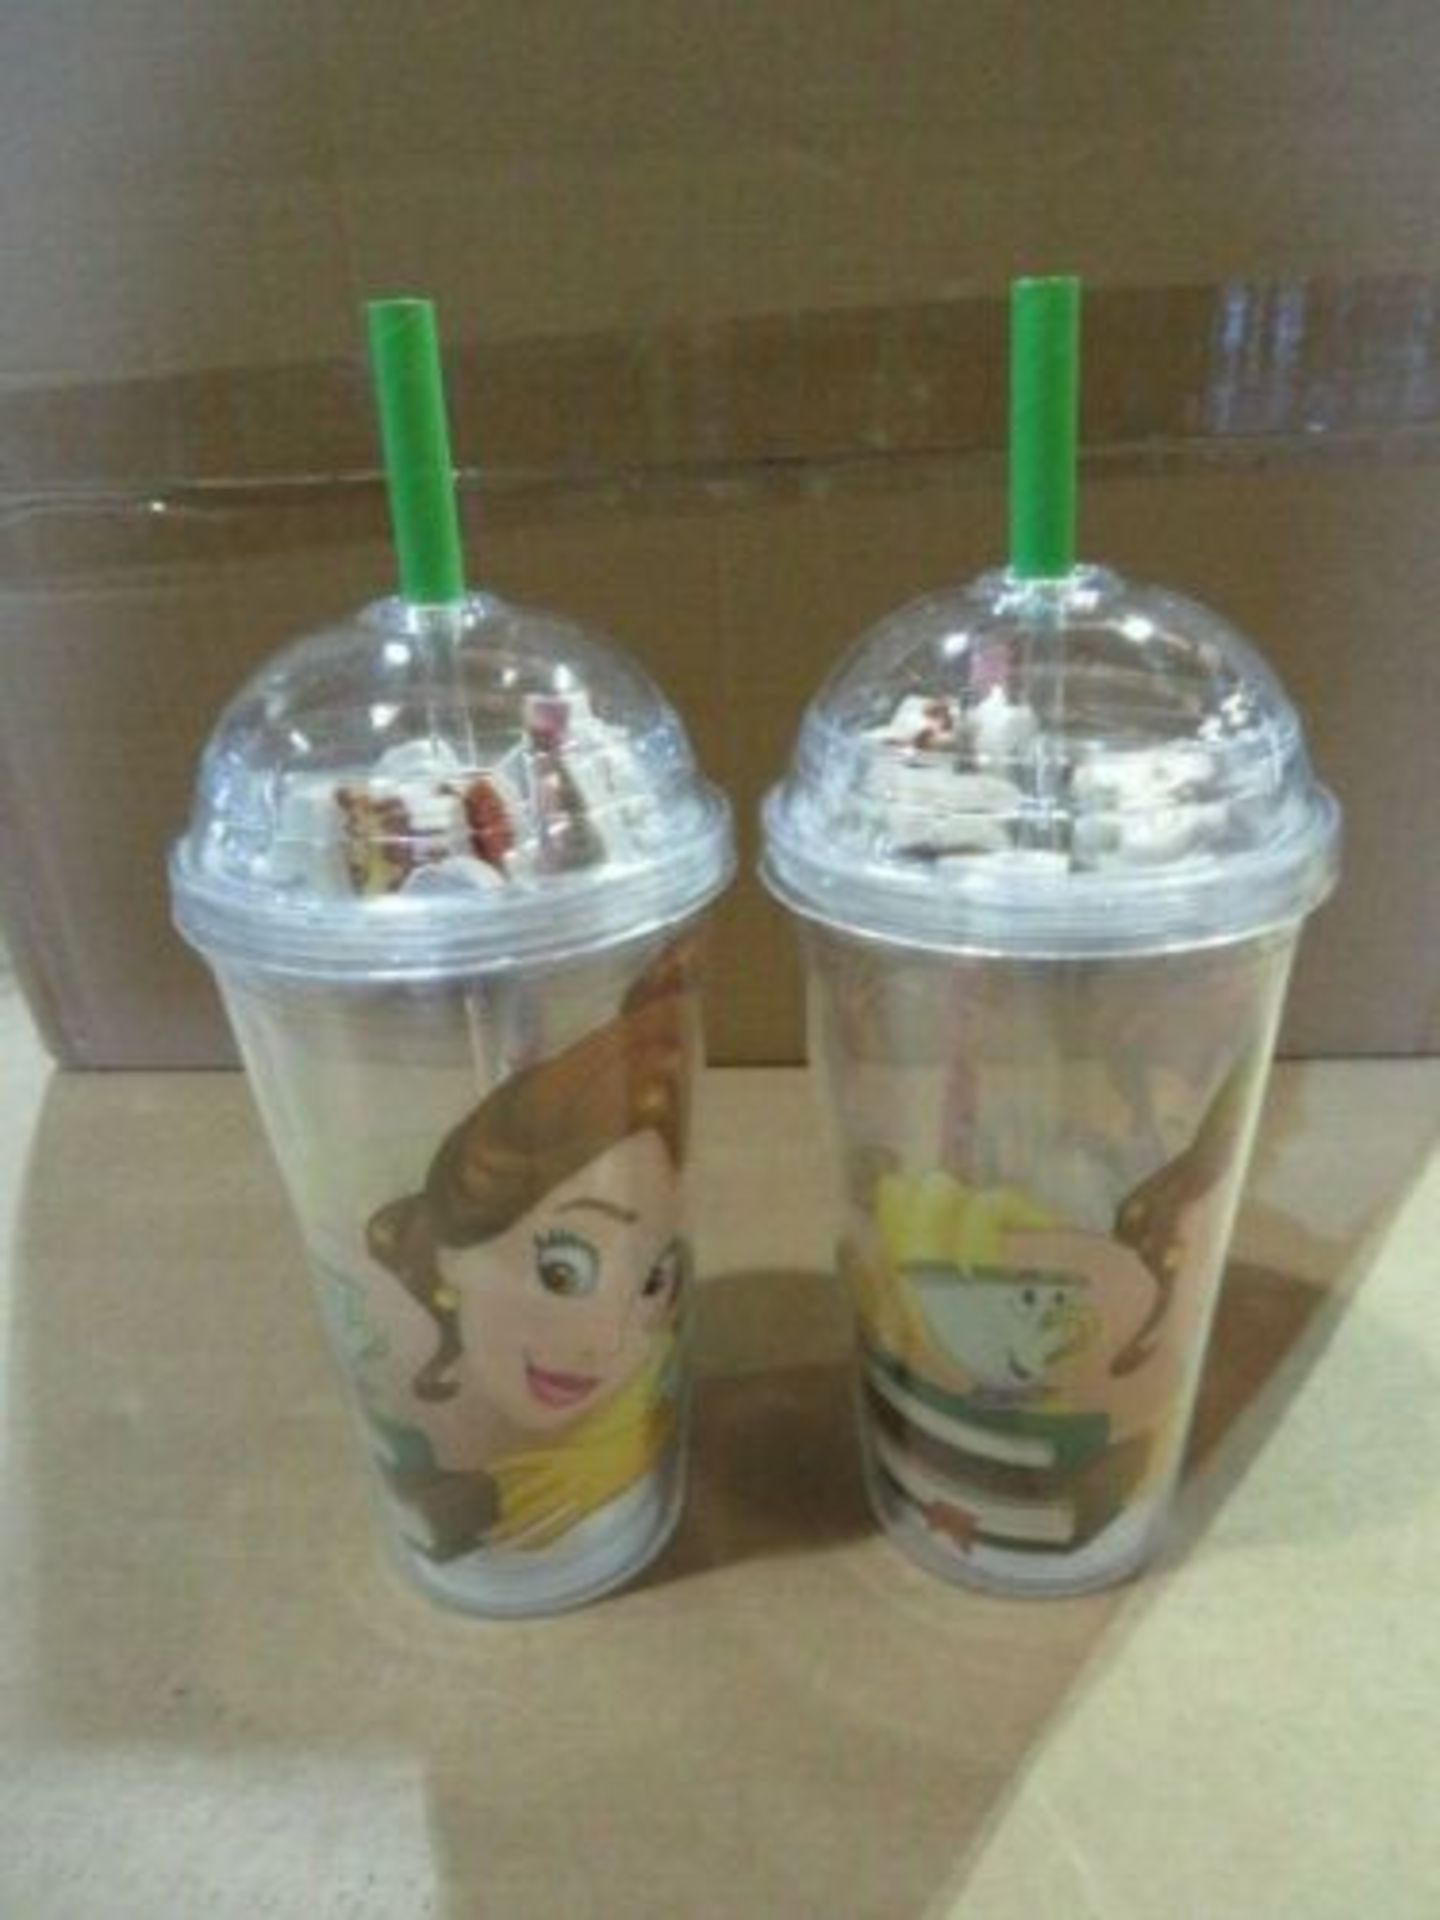 Lot 323 - WHOLESALE JOB LOT 24 X NEW DISNEY BEAUTY AND THE BEAST CUP WITH ERASERS & PENCIL. WHOLESALE JOB...